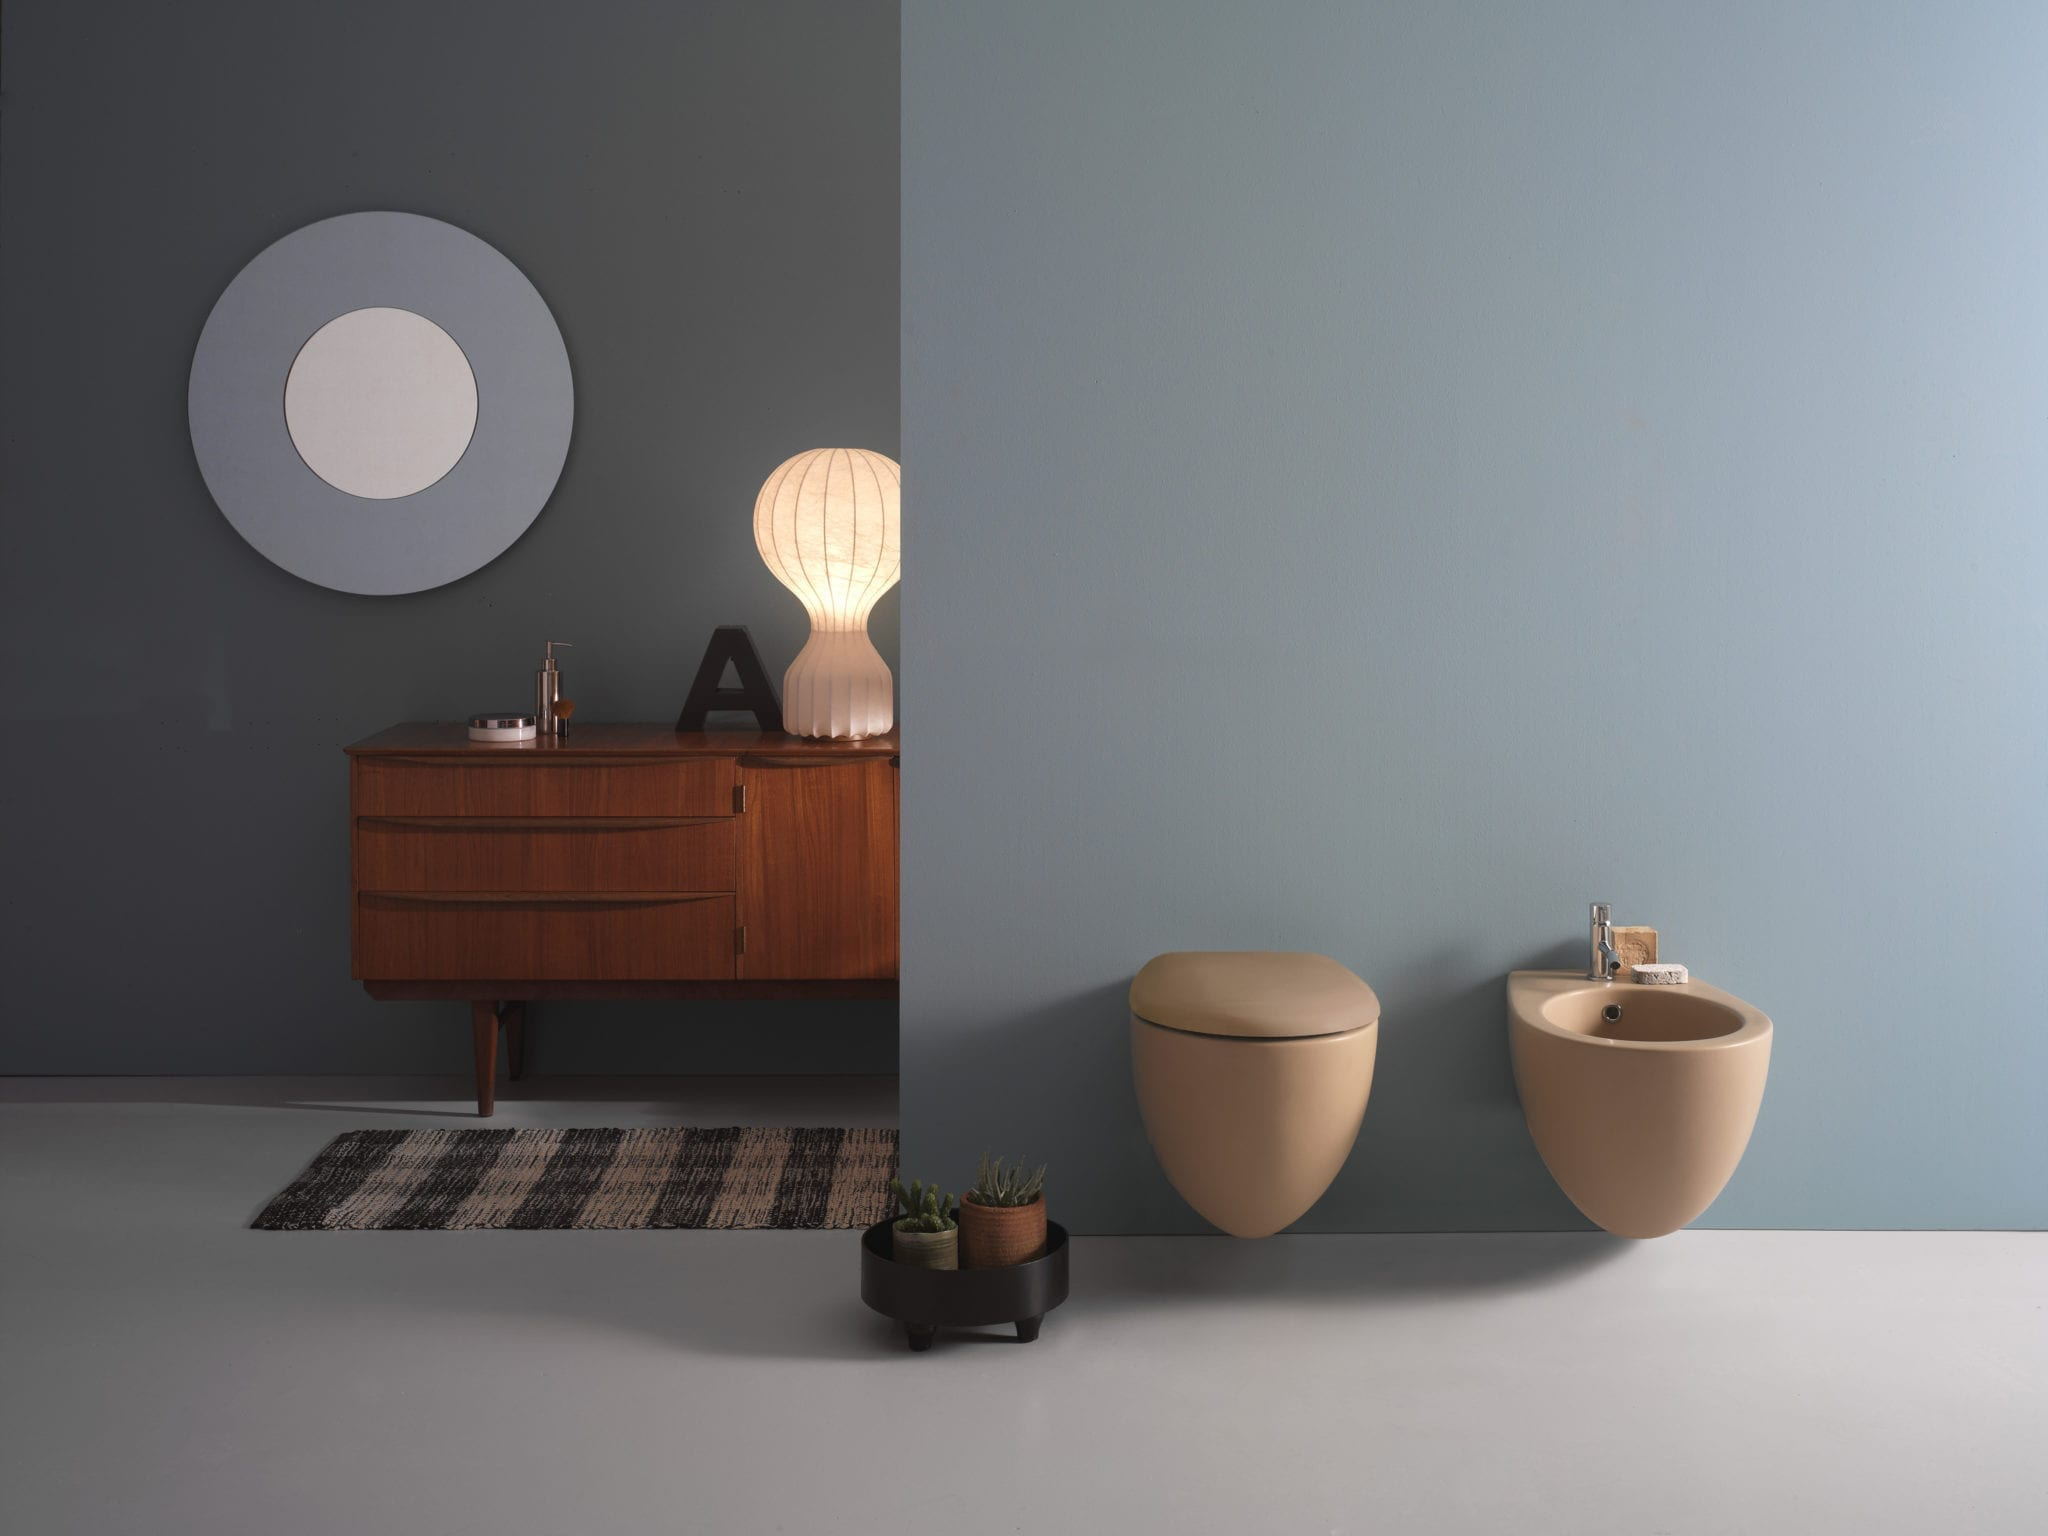 Globo Bagno di Colore Catalogue 2015 - Art direction - D+O Studio